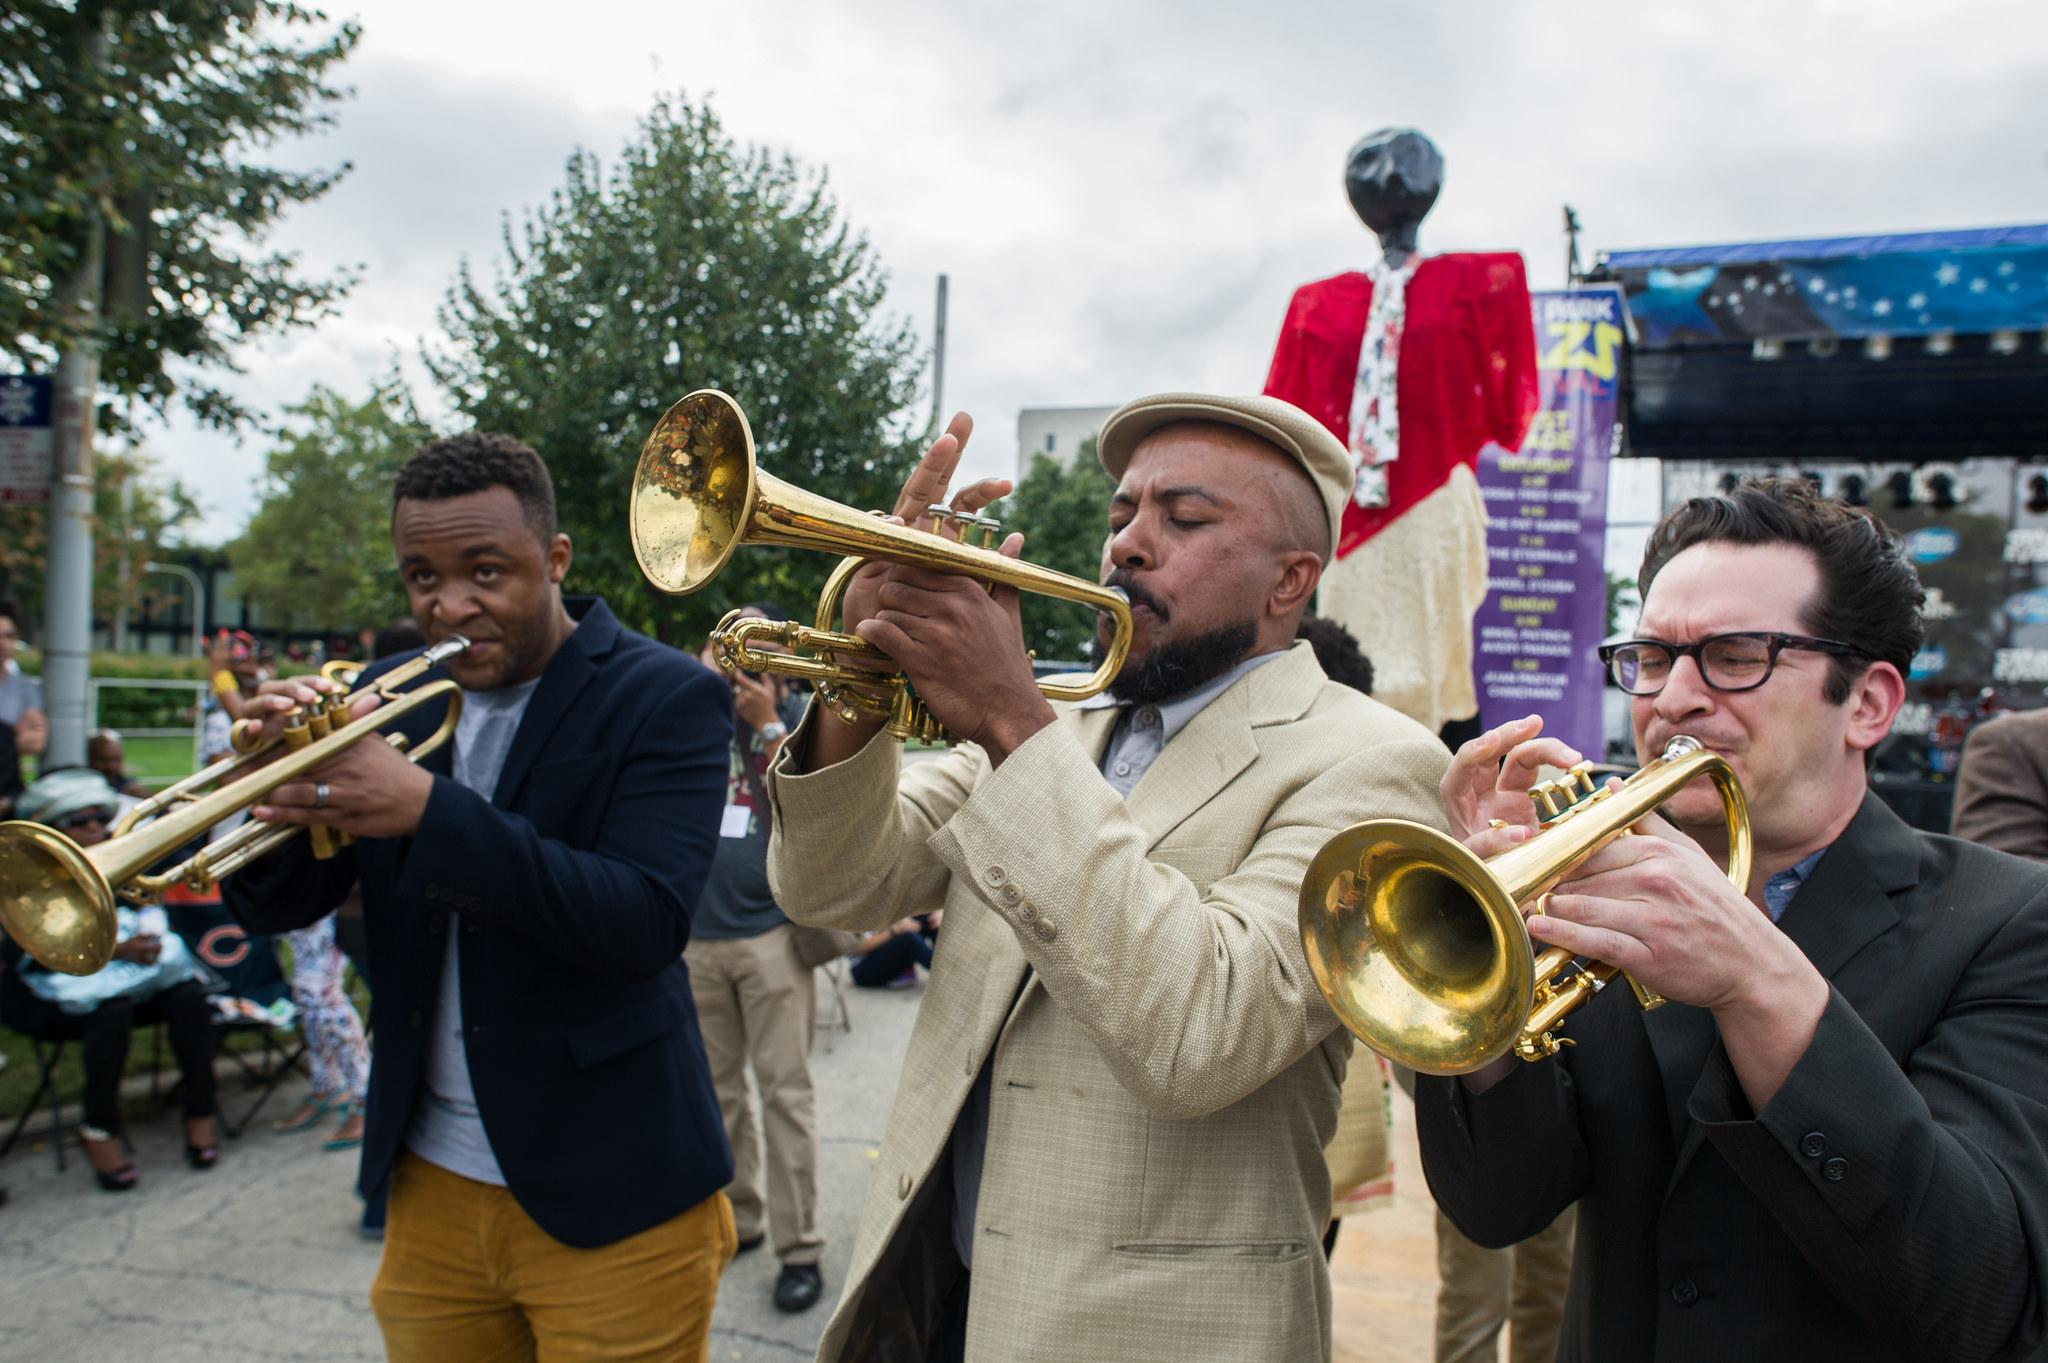 Sound the horns: The 10th annual Hyde Park Jazz Festival returns. (Marc Monaghan / Flickr)